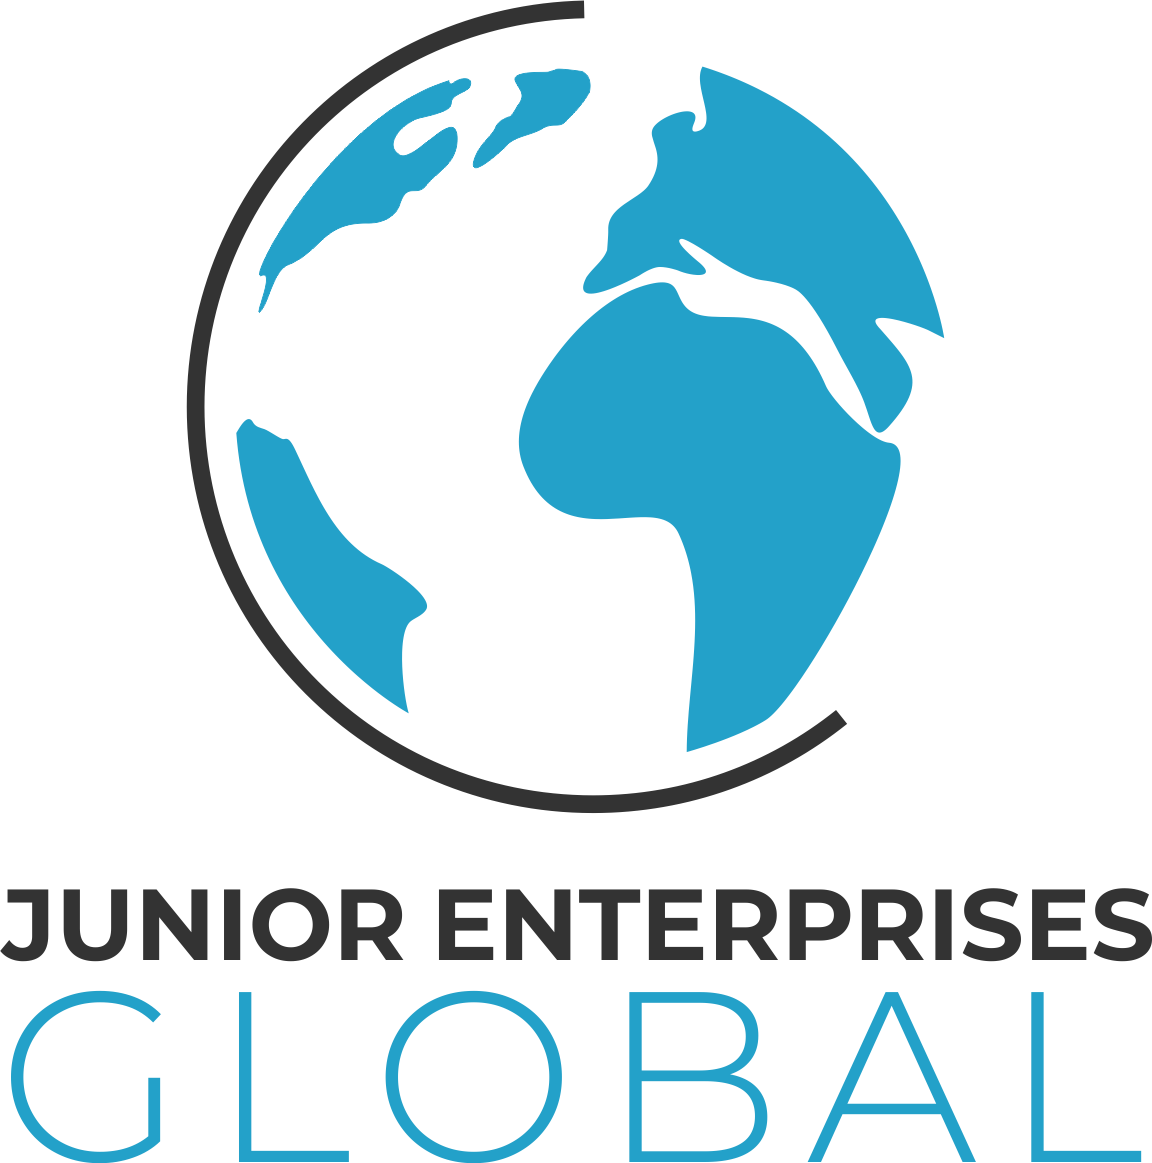 Junior Enterprises Global.